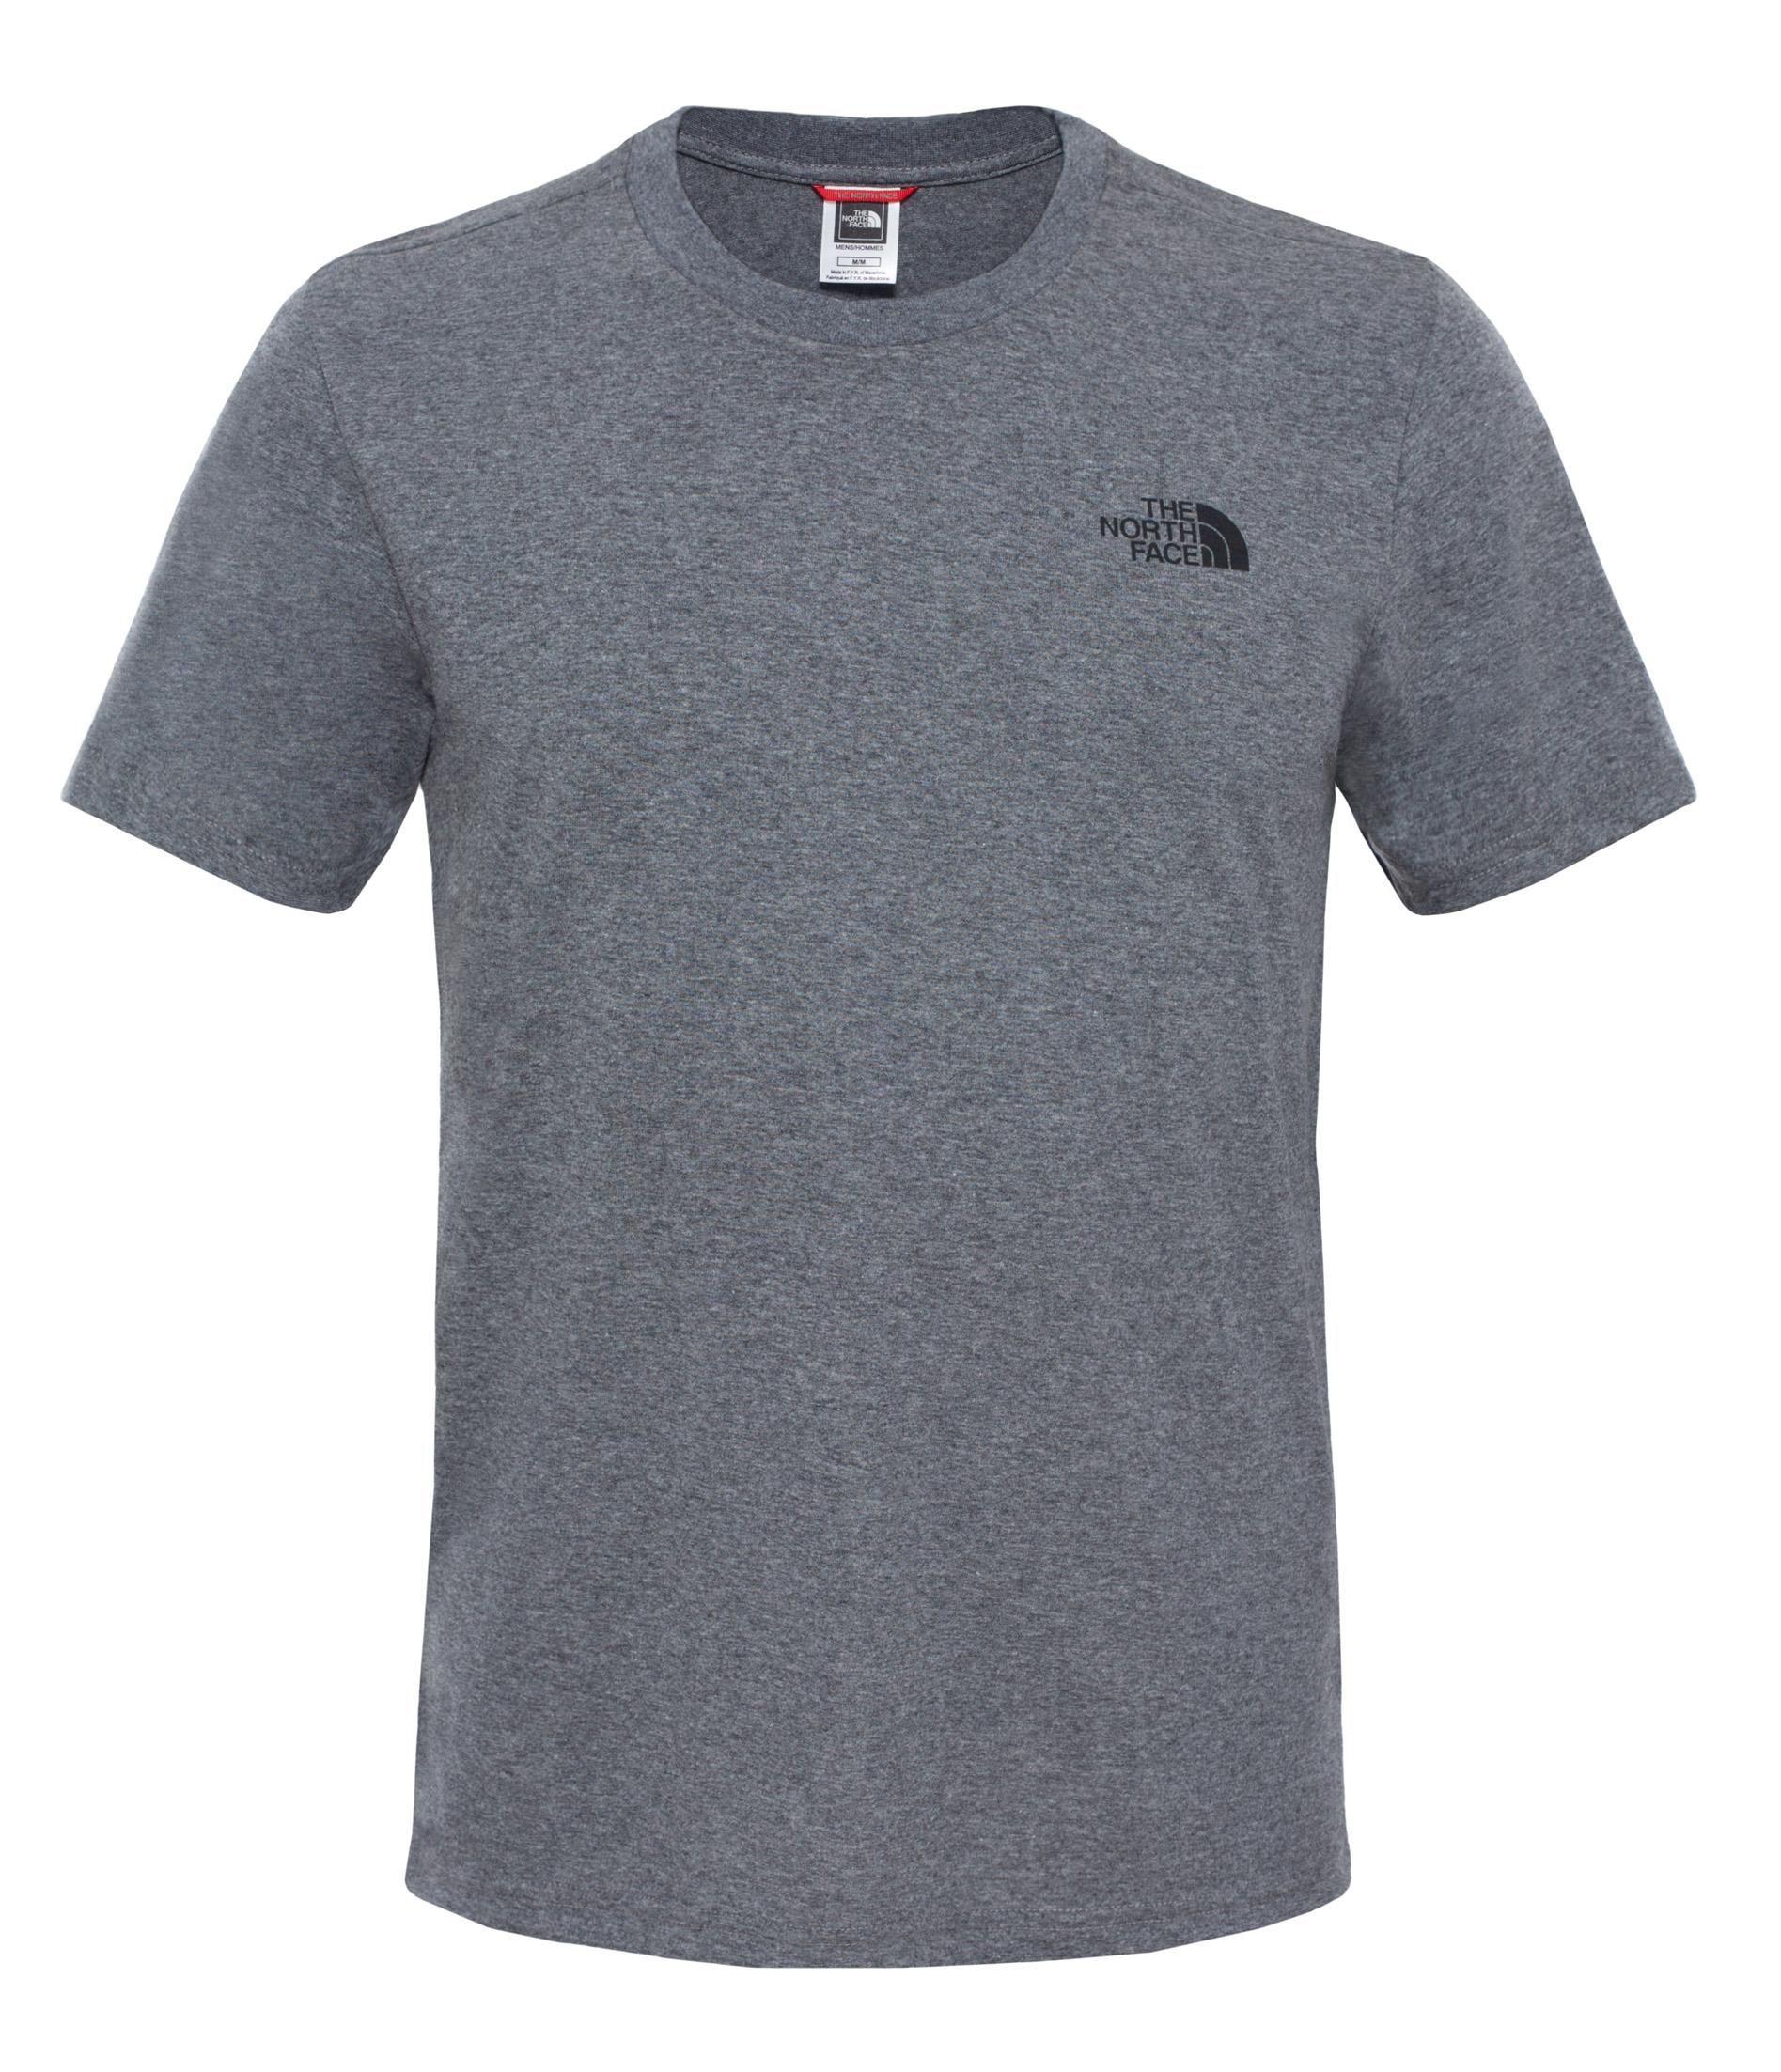 The Northface Erkek S/S Simple Dome Tee T92Tx5Jbv Tişört